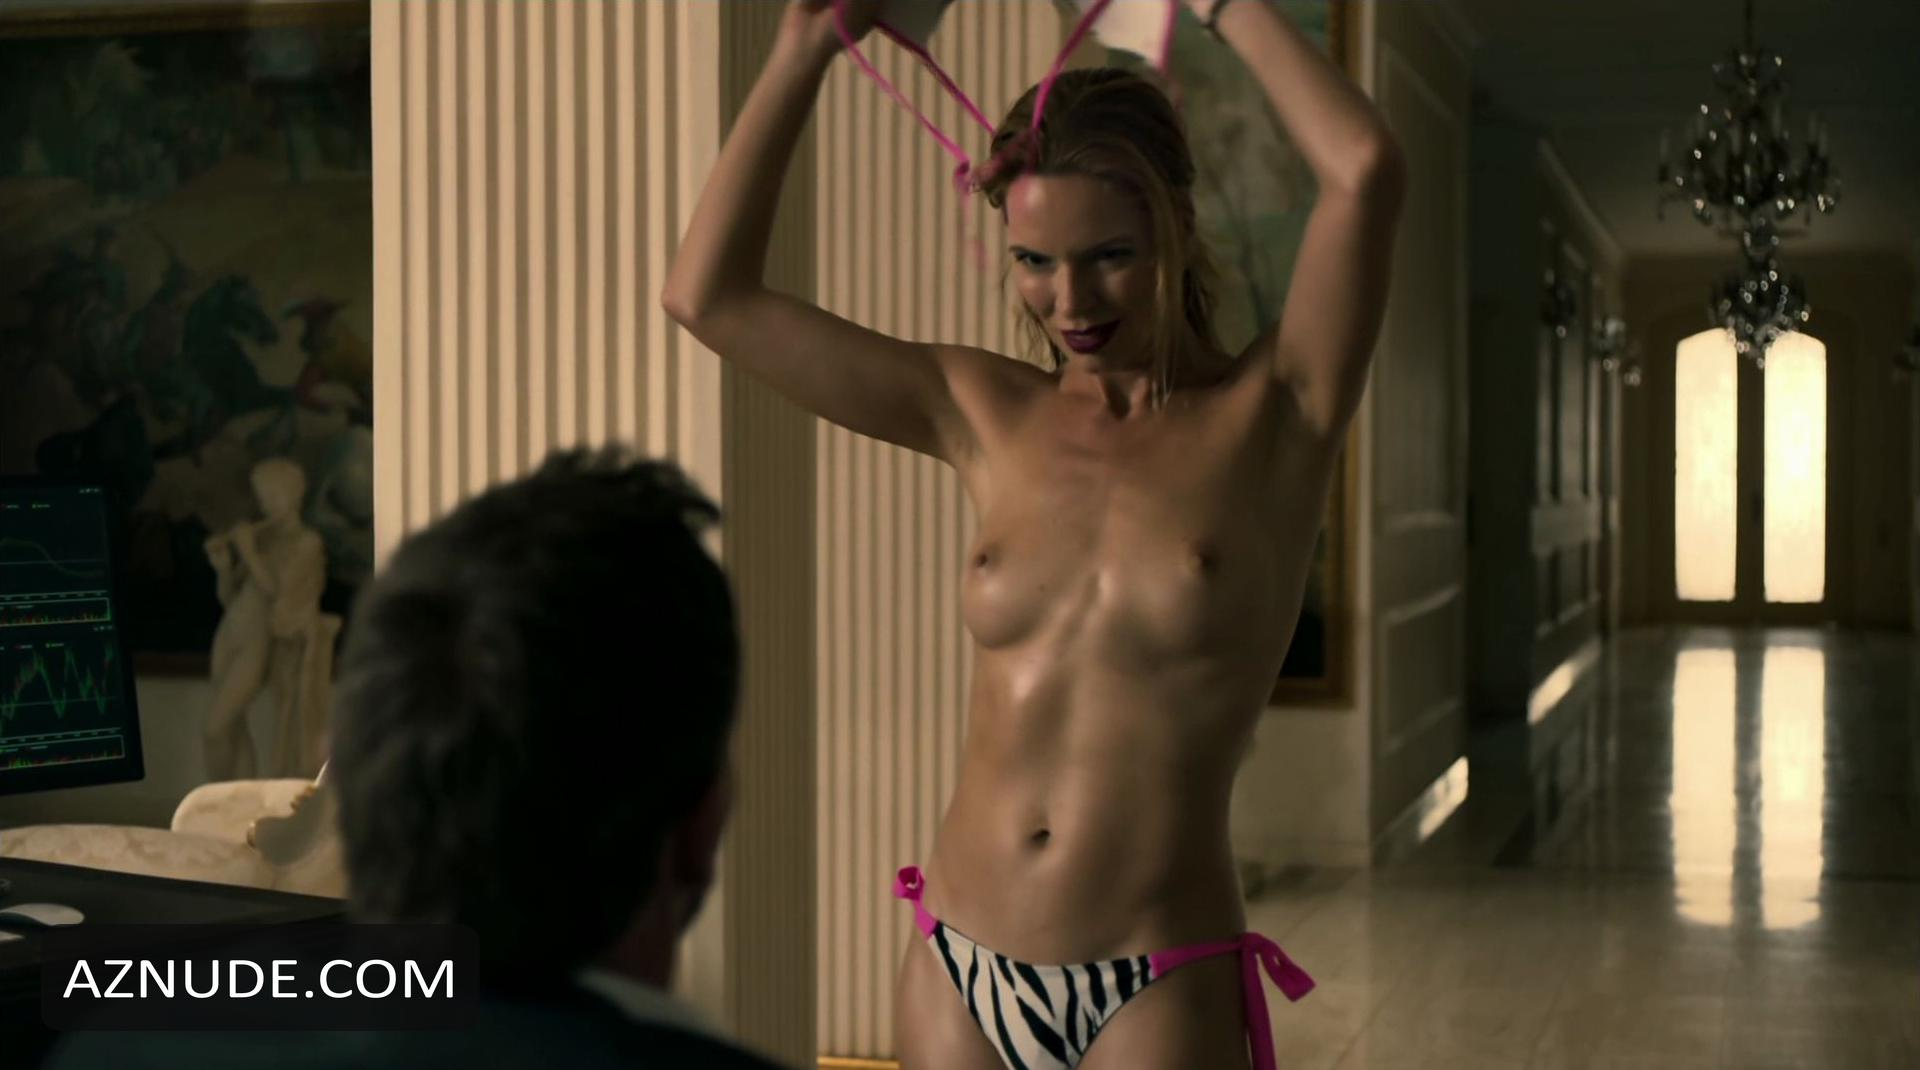 Superstar Michelle Lukes Nude Pic